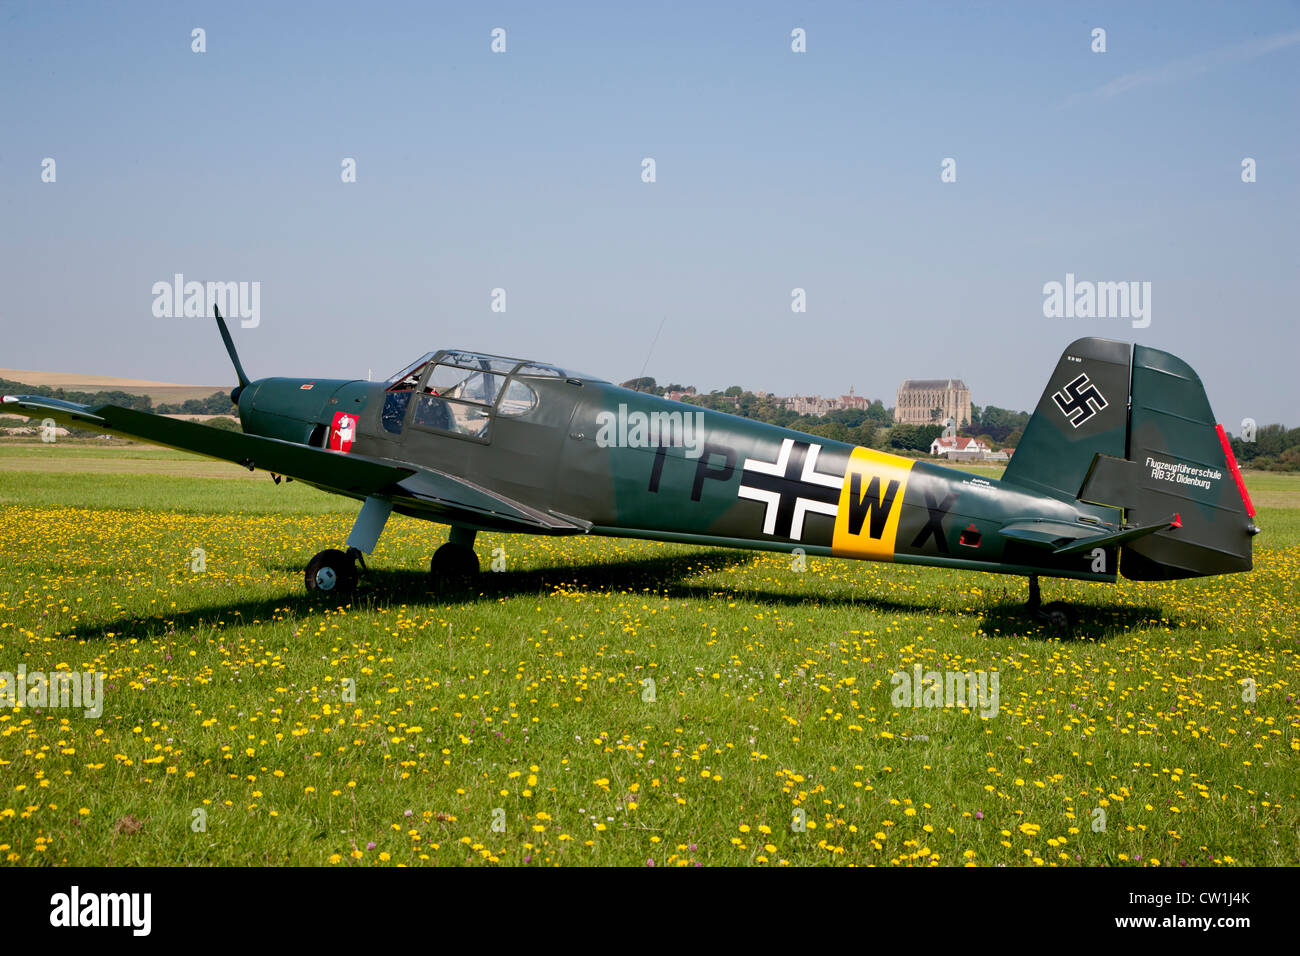 World War Two German Training Aircraft Stock Photo: 49823331